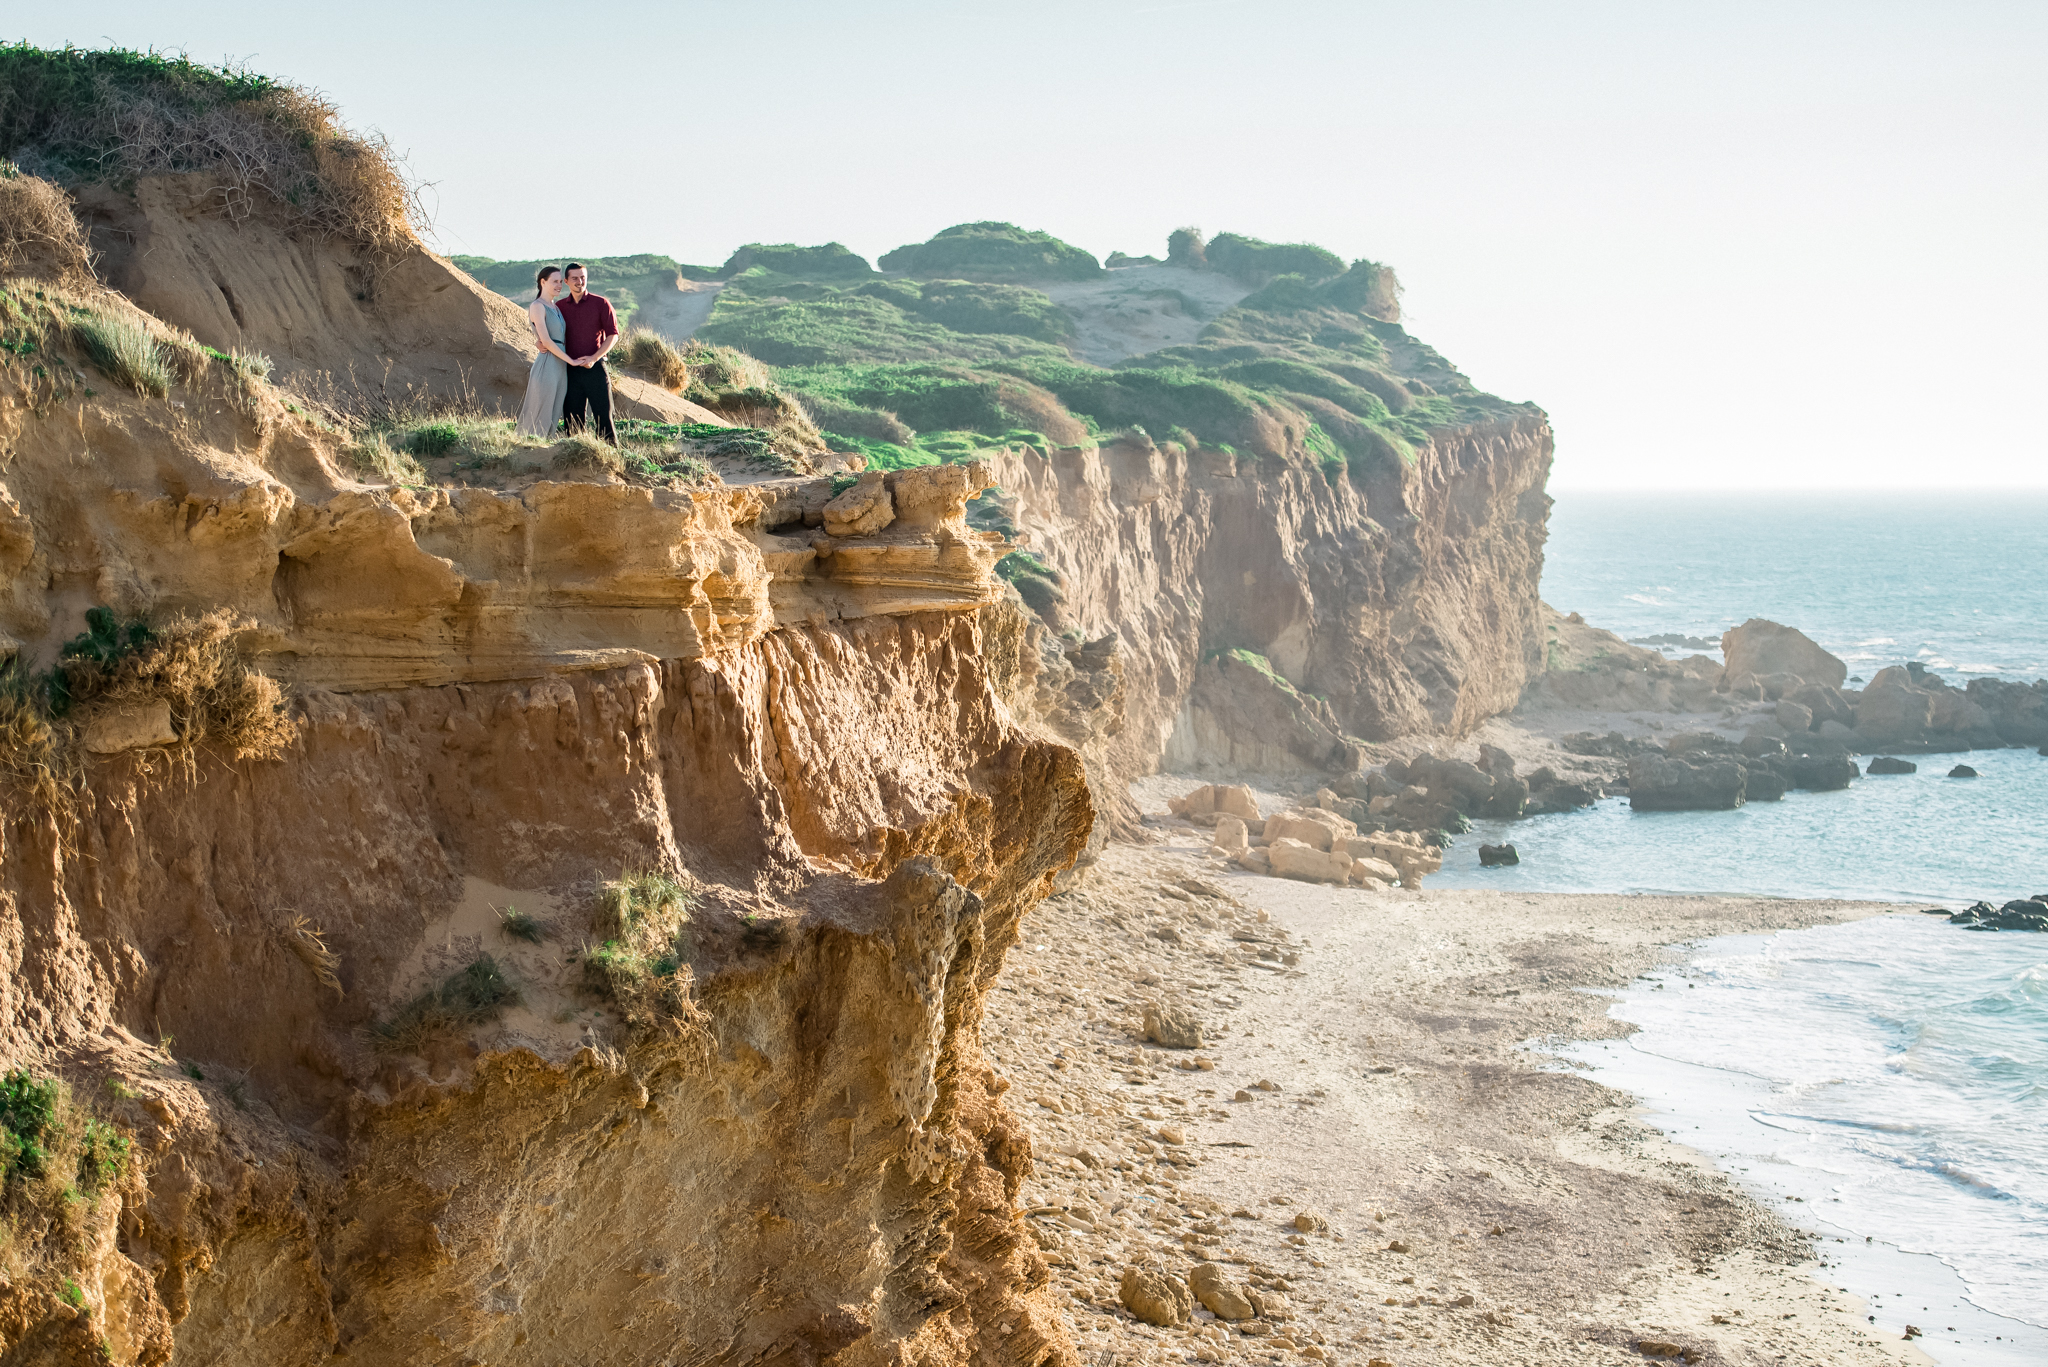 Cliffside-beach-engagement-session-hadera-israel-kate-giryes-photography-9132.jpg